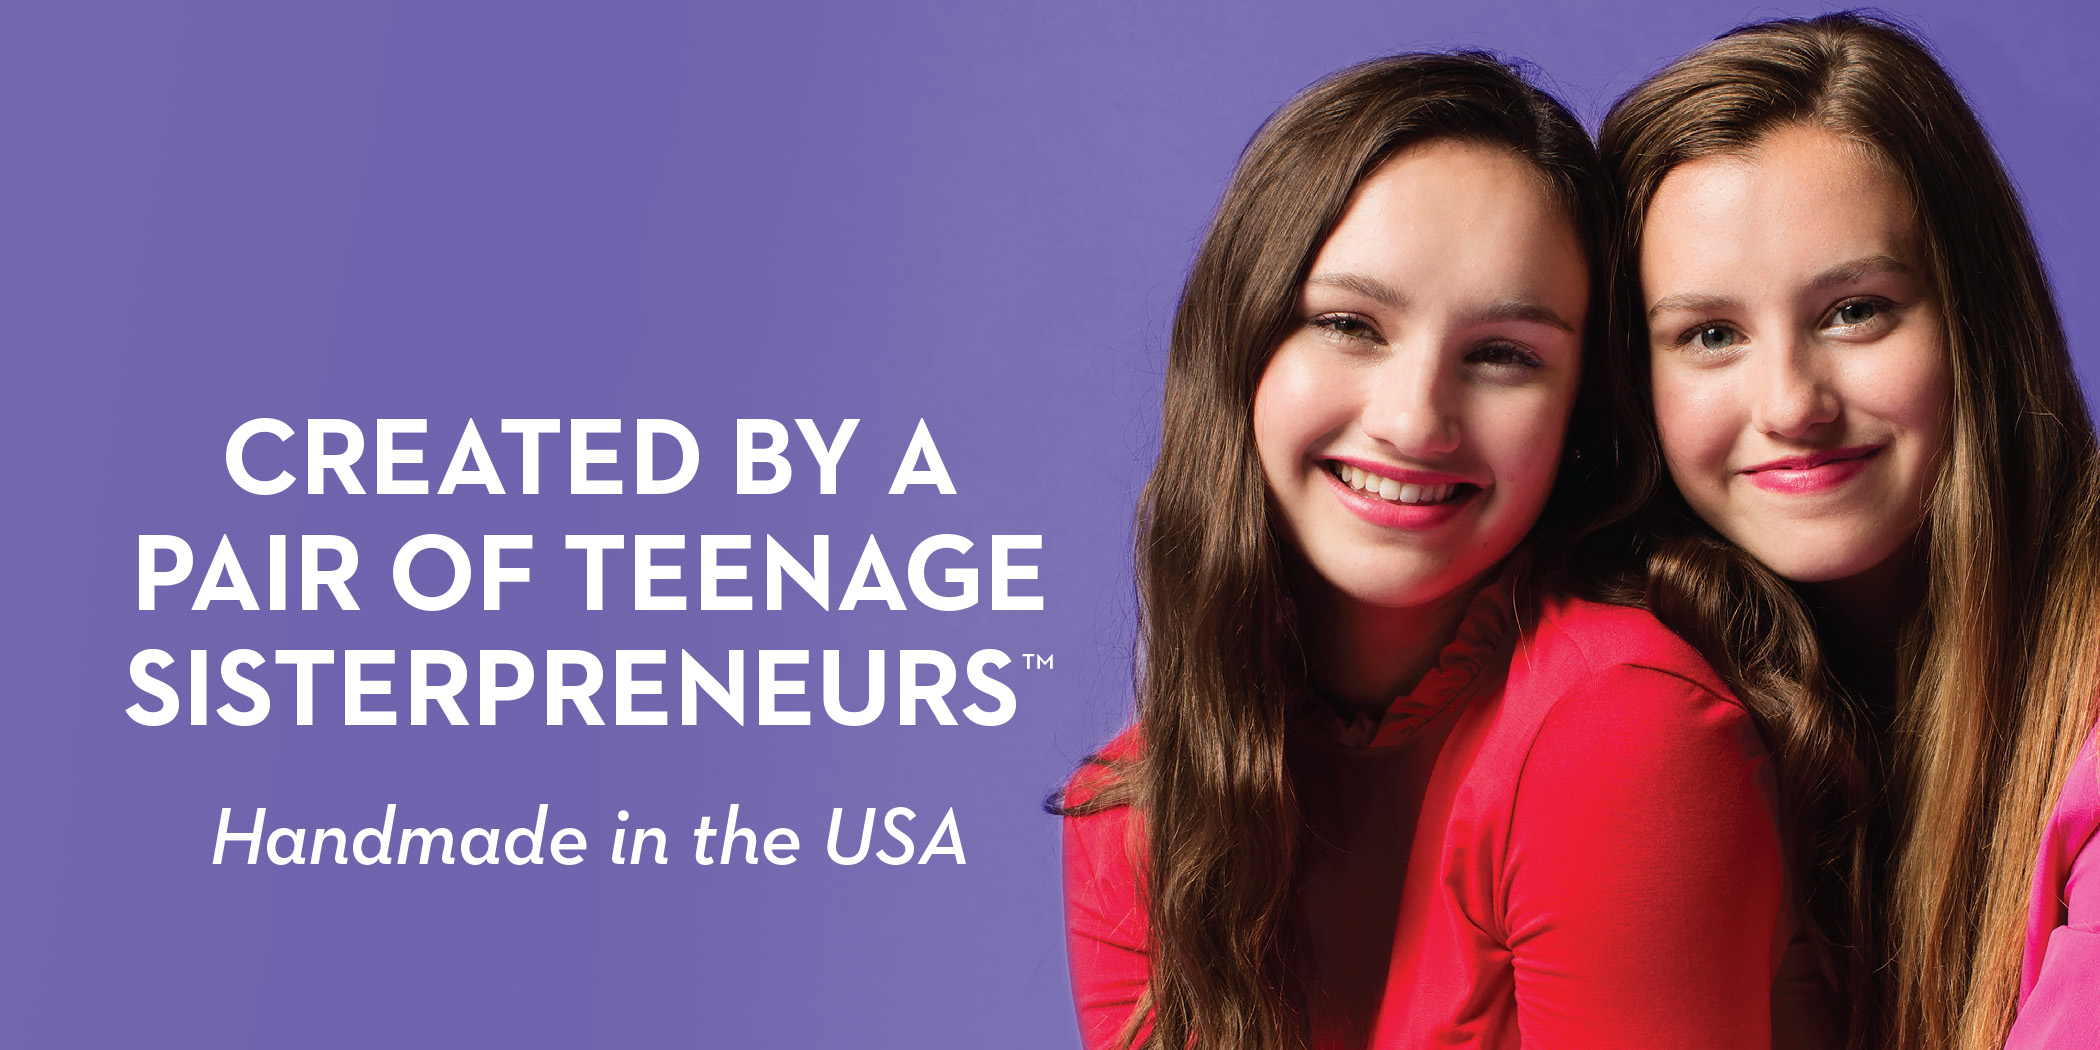 Purple banner with picture of teenage sisters stating Da bomb wasCreated by a pair of teenage sisterpreneurs